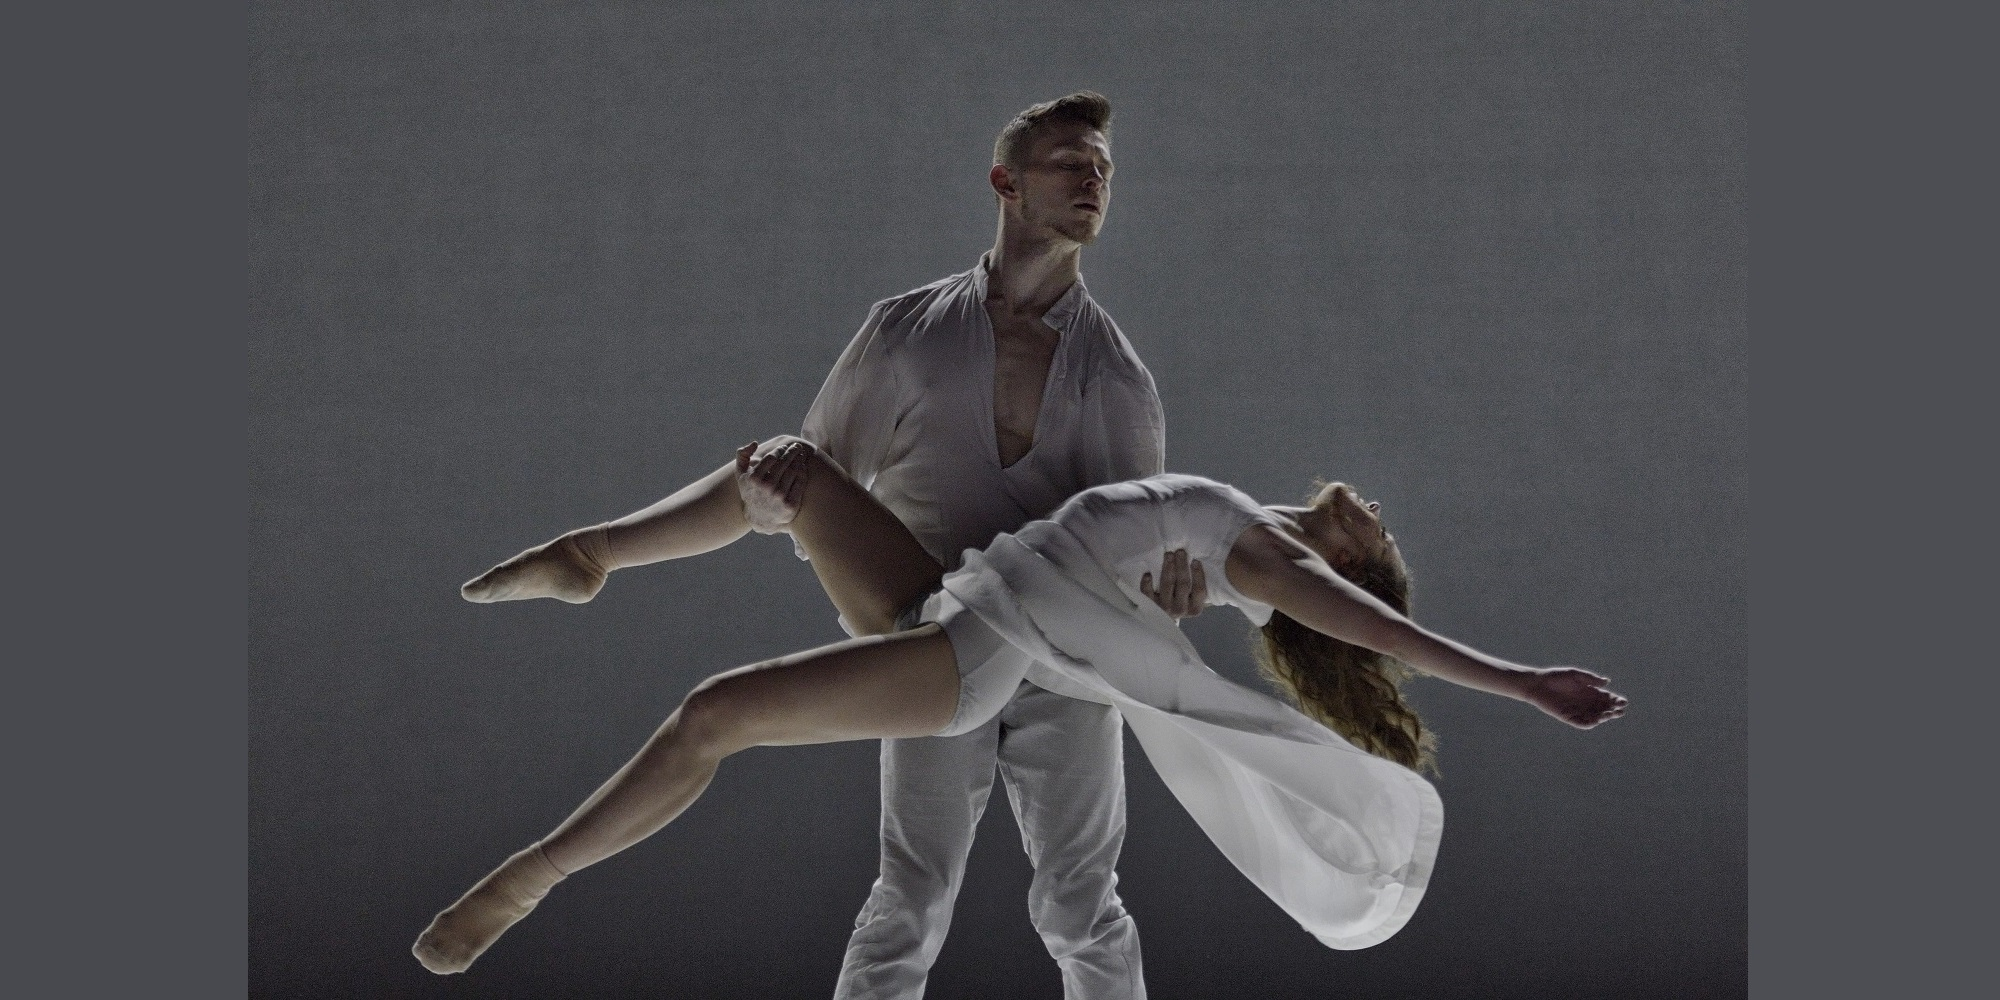 The Soraya Launches Ballet BC's Exquisite Retelling of Romeo + Juliet  February 29 and March 1 | L.A. Dance Chronicle